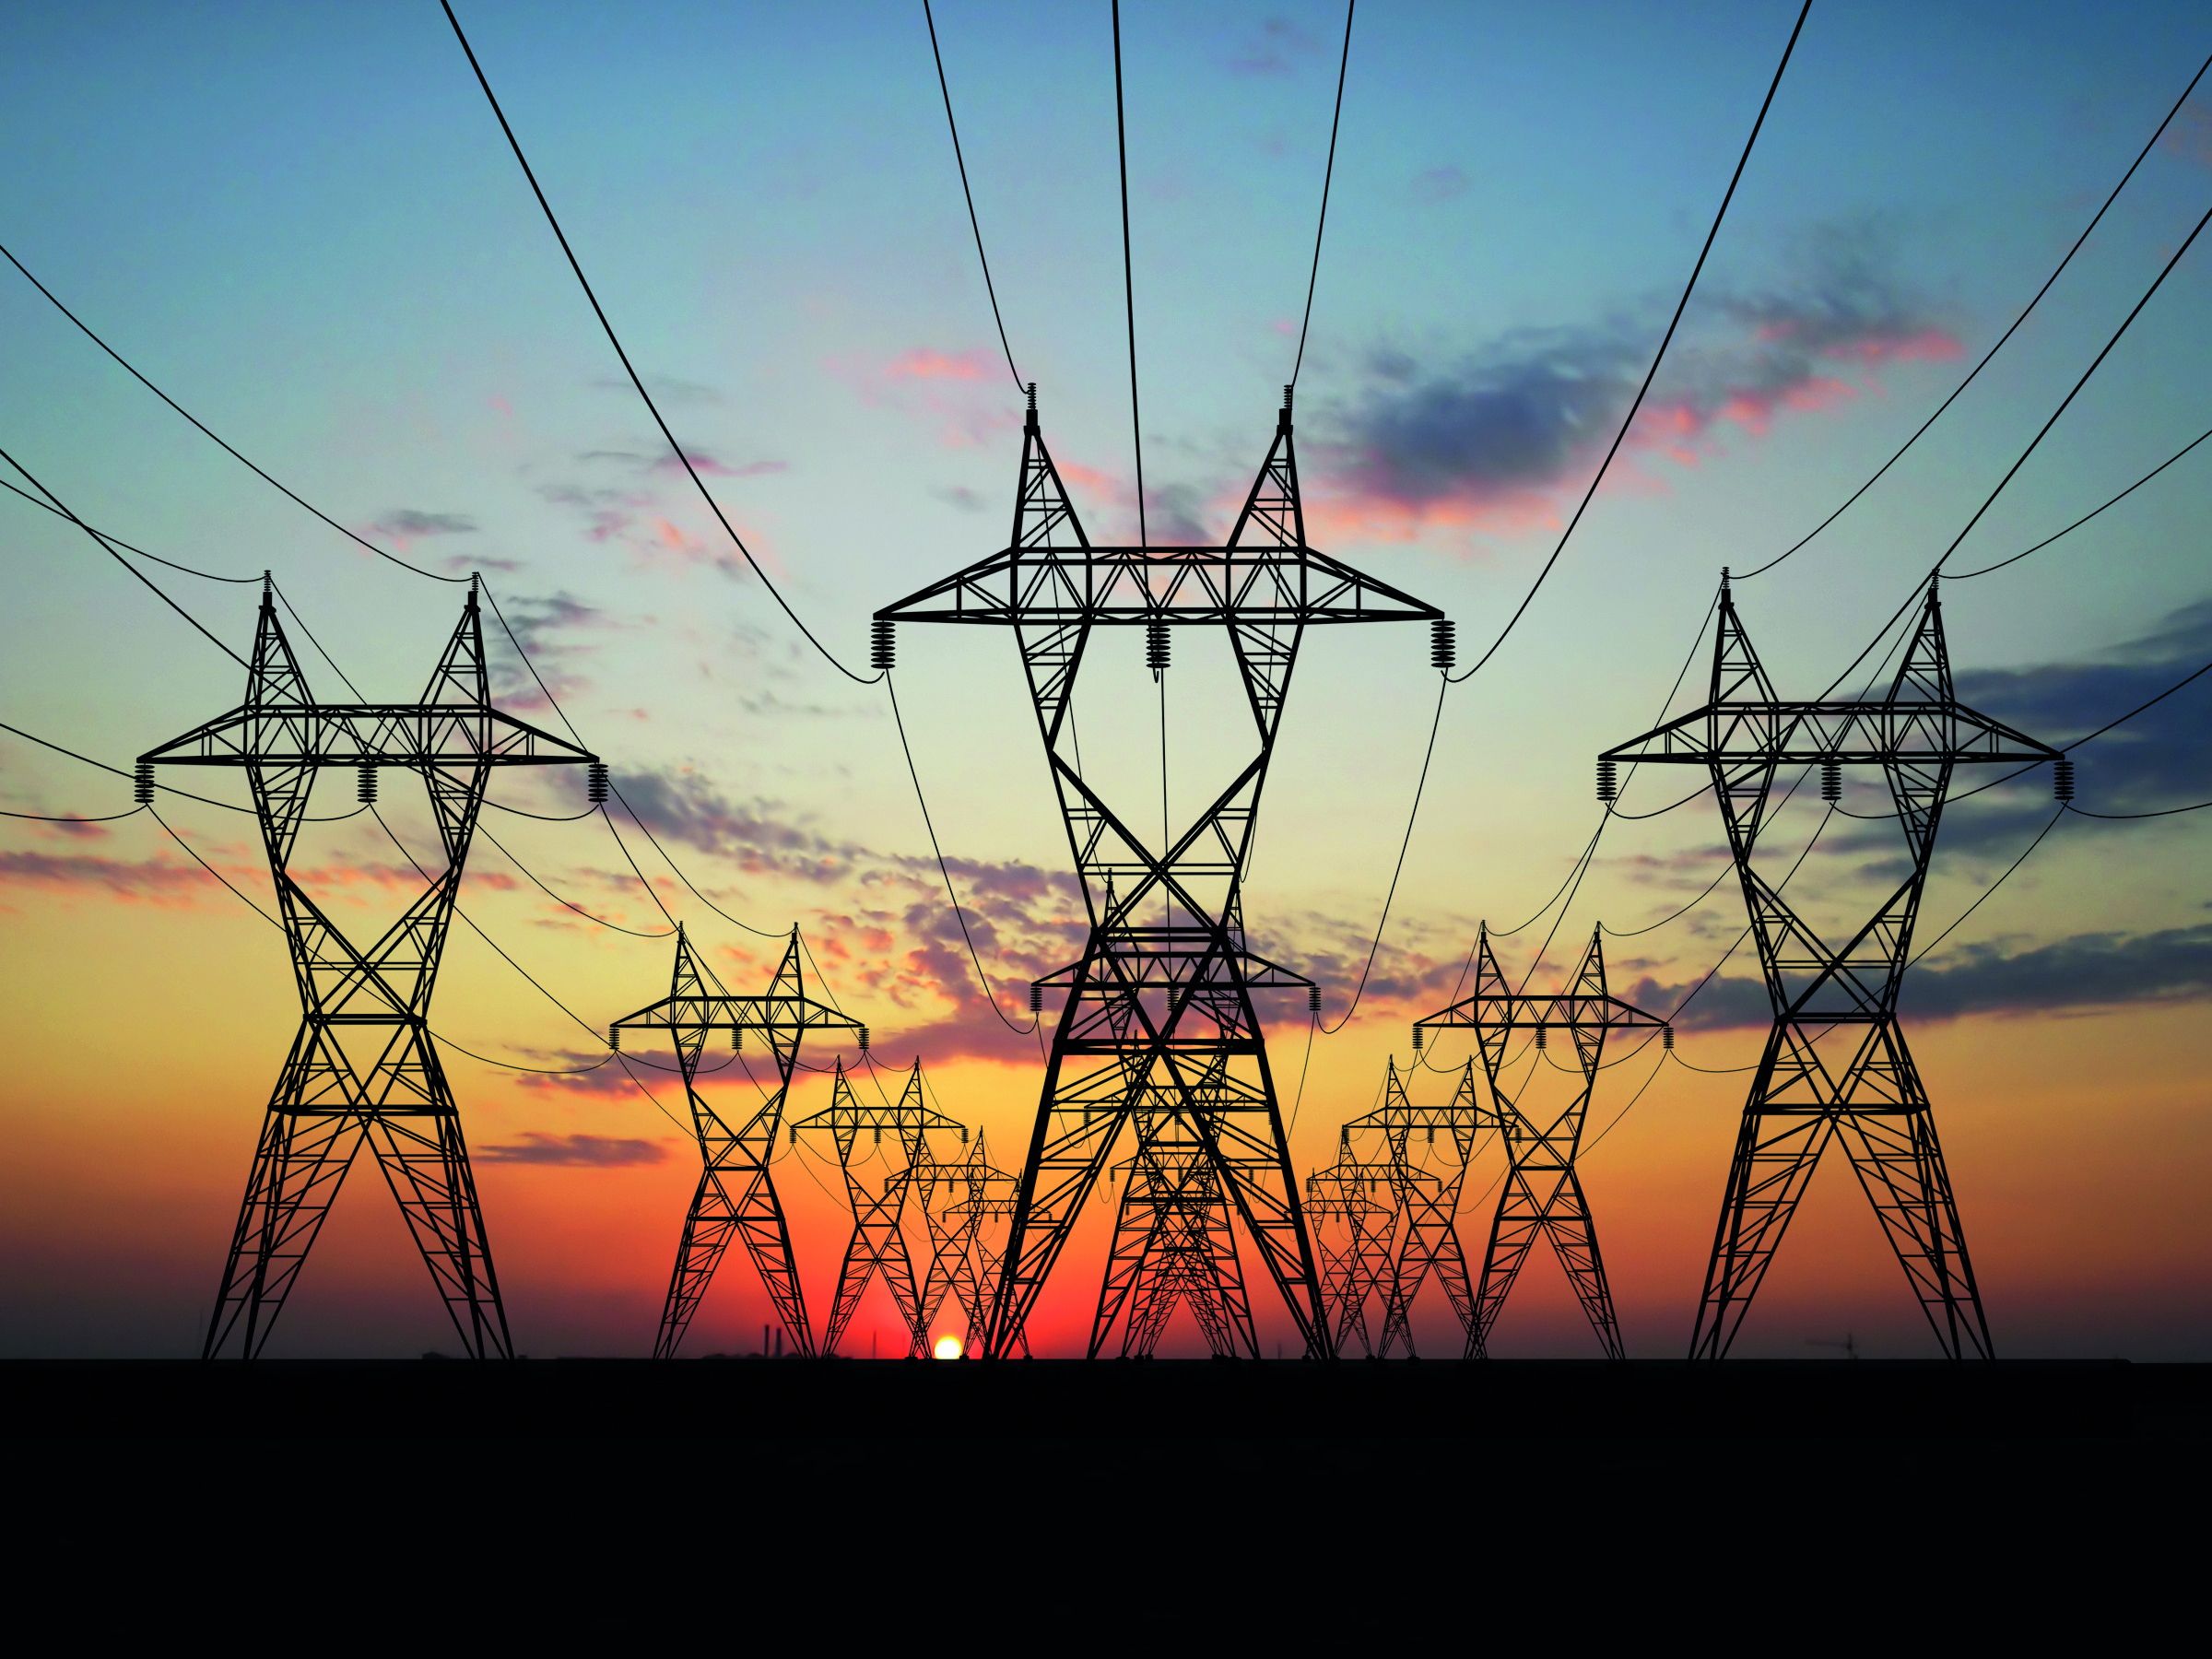 General - Electric Powerlines At Sunrise